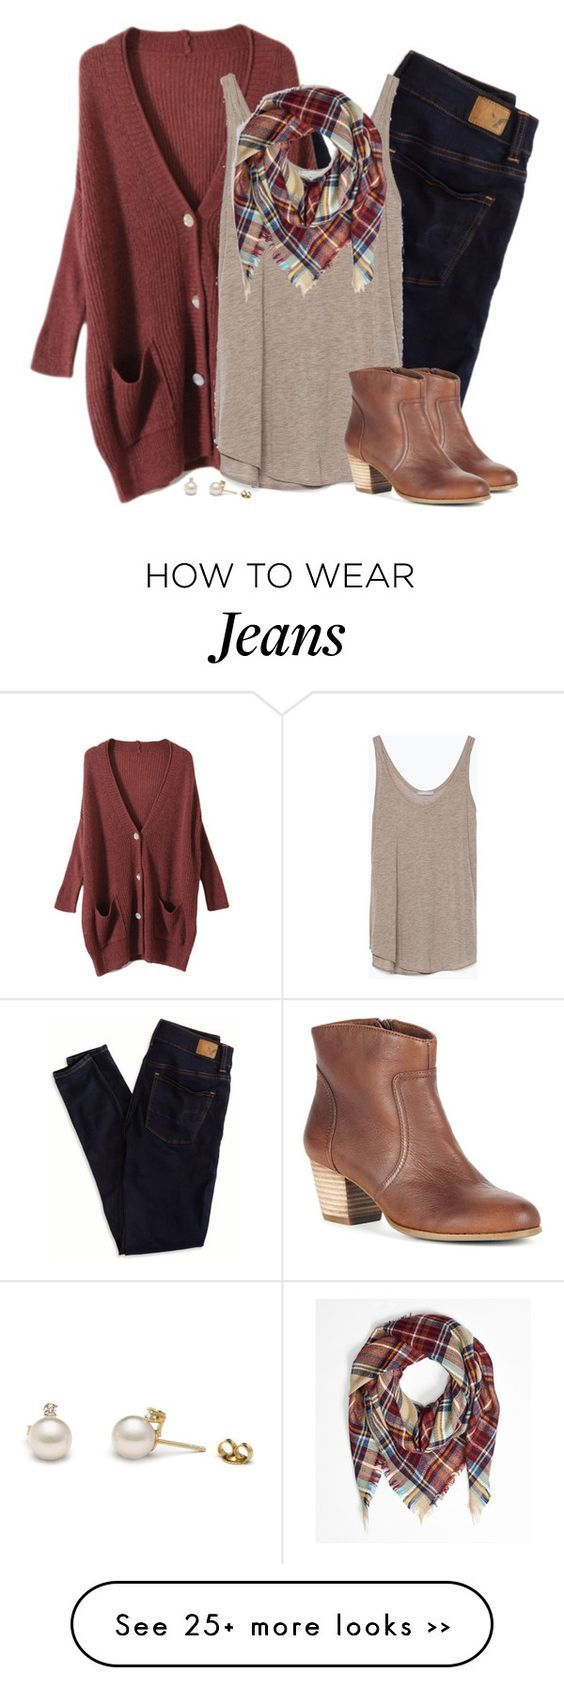 I love this style - just bought a pair of booties in this color! I would love a pair of jeans in dark wash - same style I got in previous fix - Kut from the Kloth - size 8 this time....